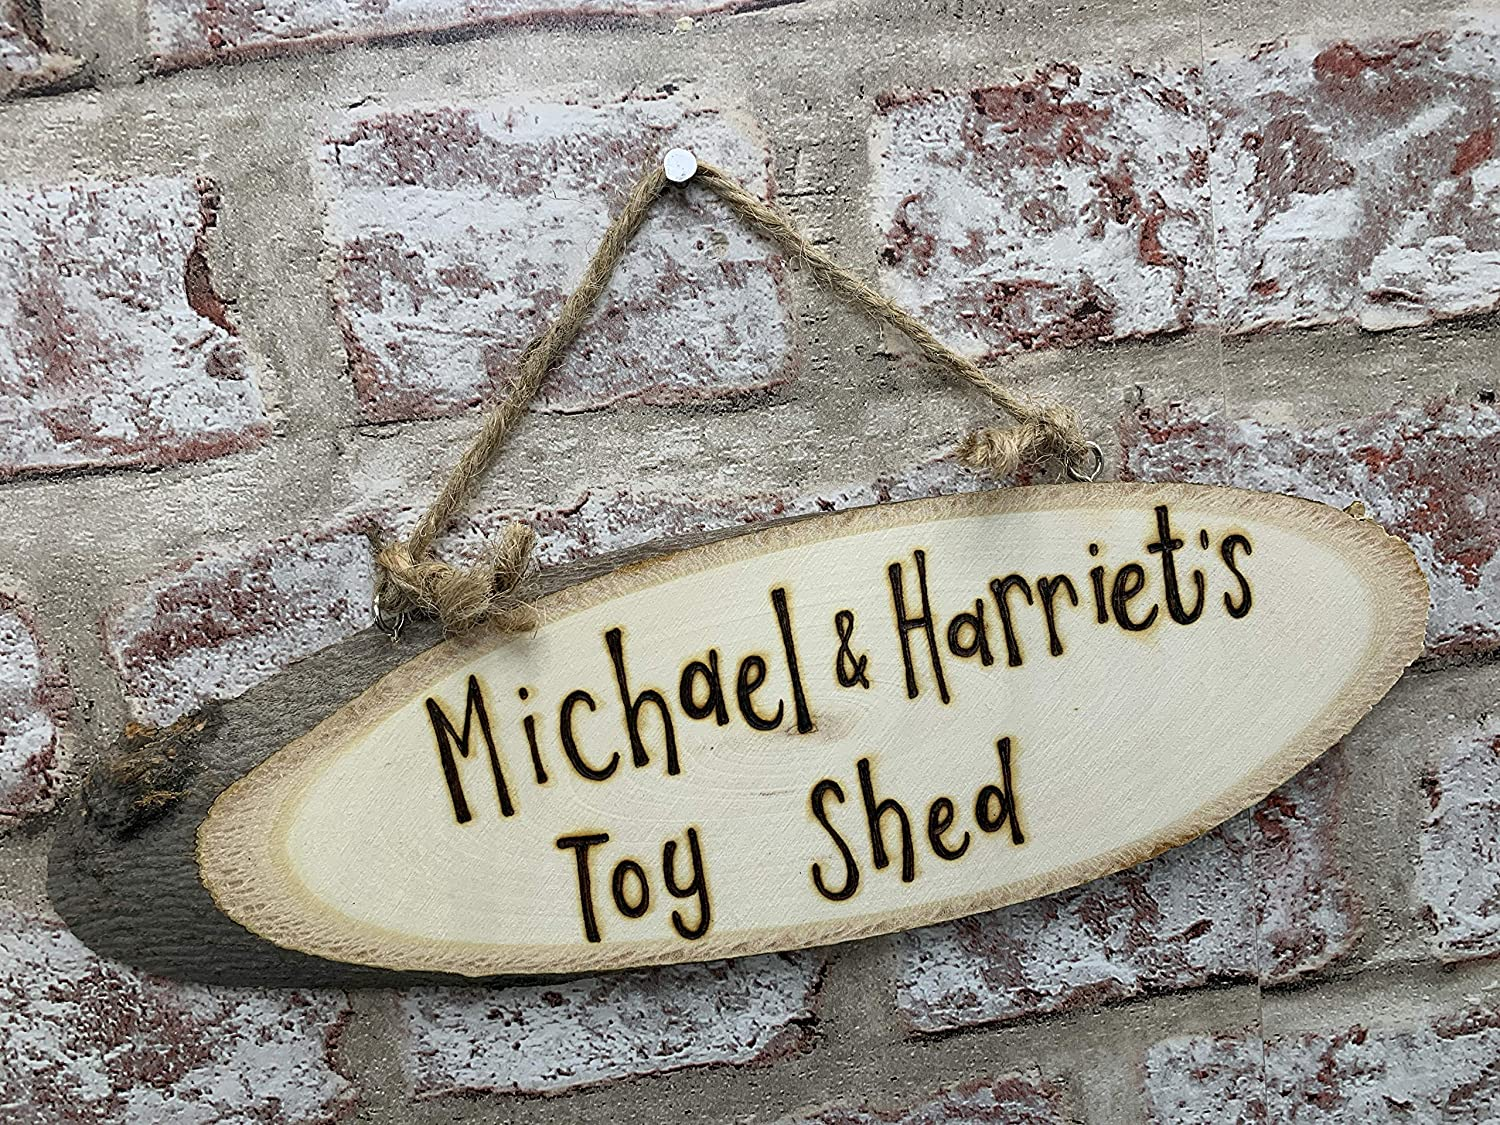 Childrens Kids Playhouse Mud Kitchen Treehouse Personalised Wooden Wall Door Plaque Hanging Sign Gift